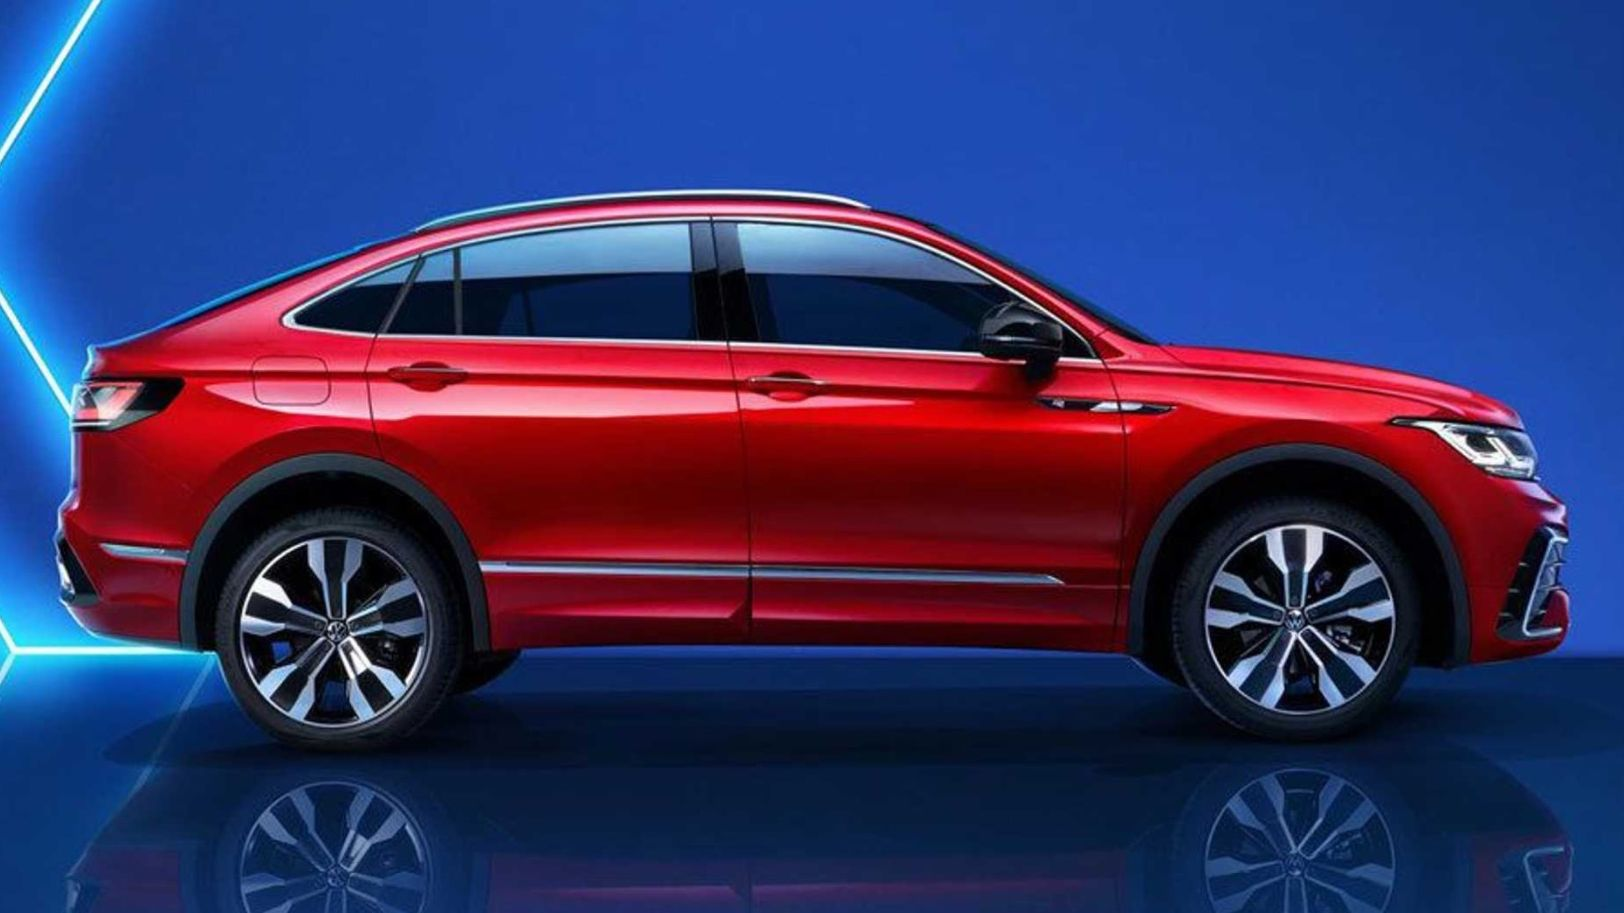 Vw Tiguan X Gives The Suv A Coupe Style Roof